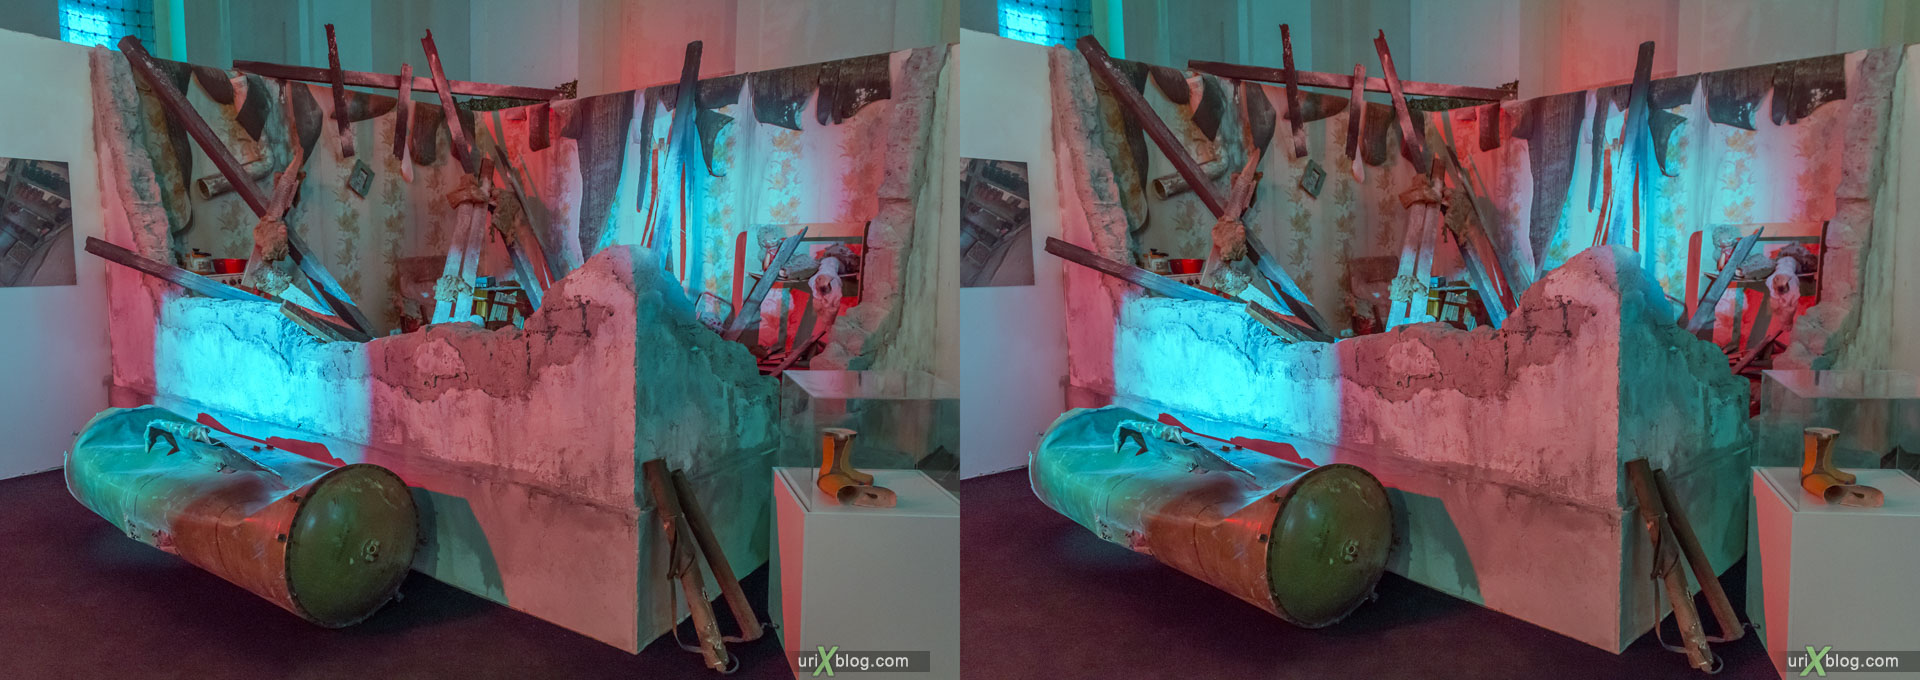 Material evidence, Physical evidence, real evidenca, exhibition, VDNKh, VVTs, Donbass, DNR, LNR, Ukraine, Moscow, Russia, 3D, stereo pair, cross-eyed, crossview, cross view stereo pair, stereoscopic, 2015